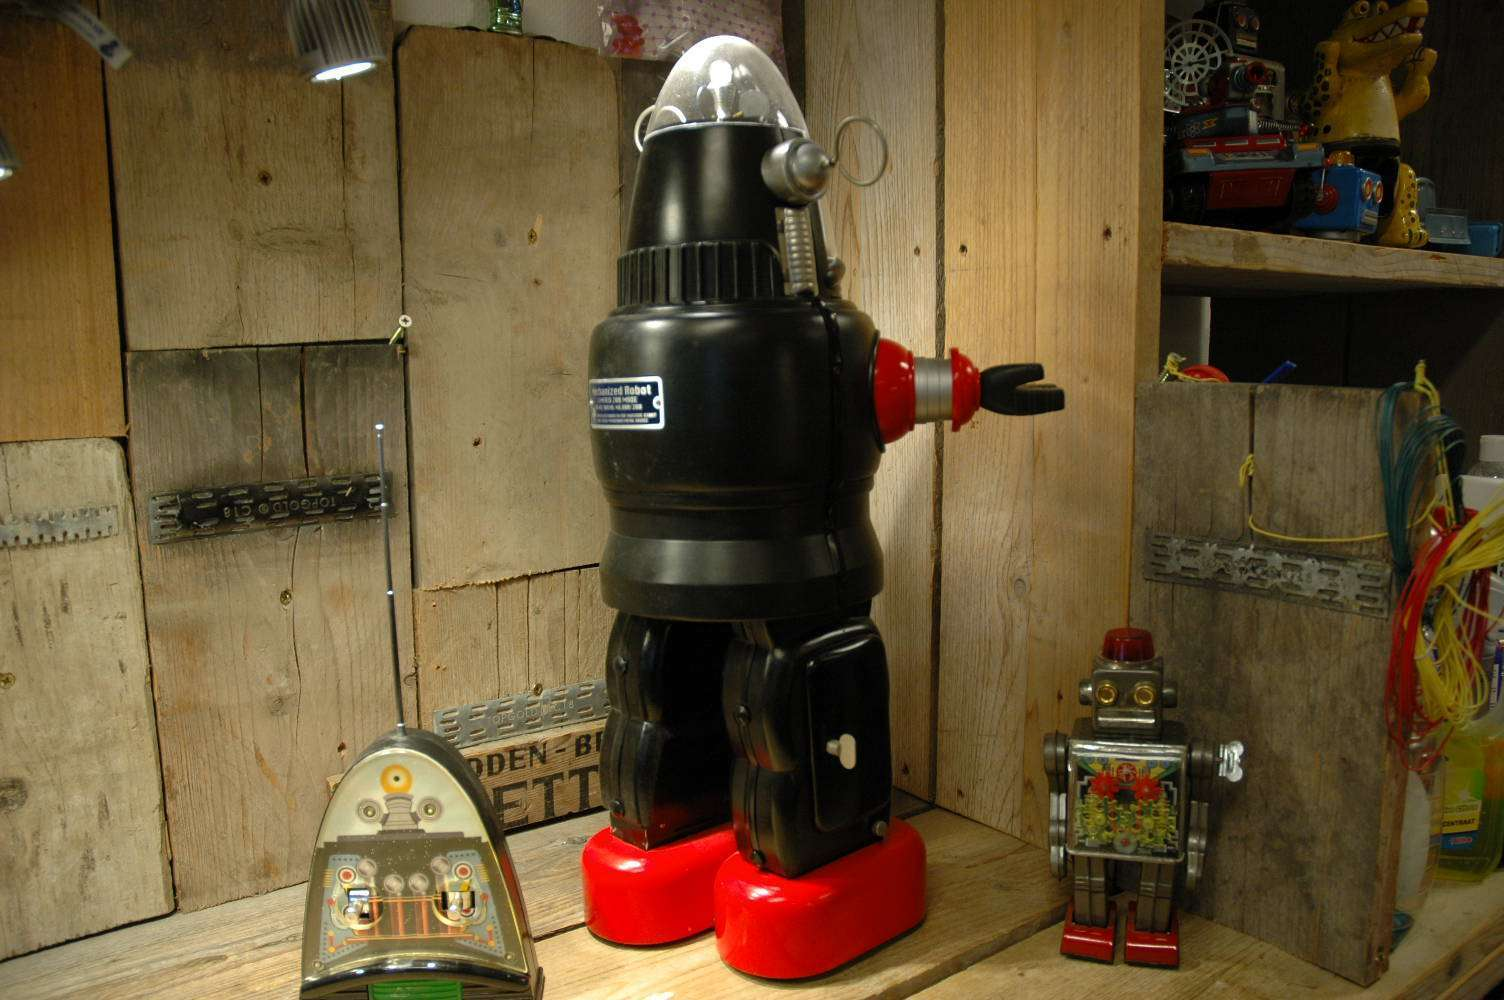 Metal House - Mechanized Robby Robot Prototype 000 of 200